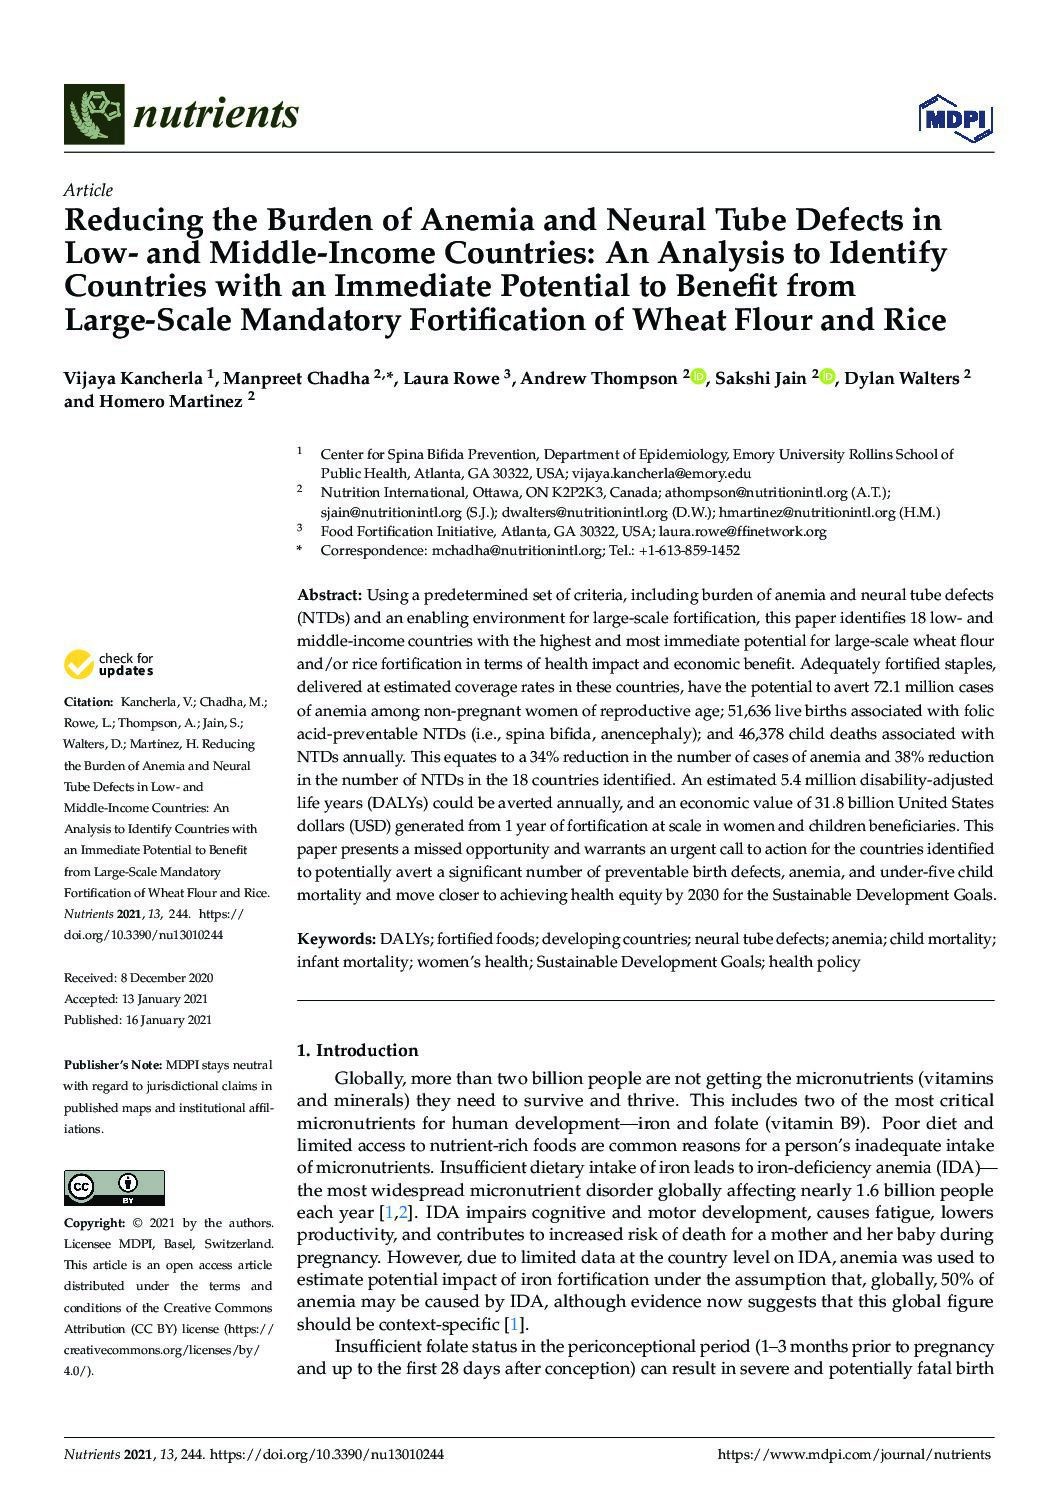 Reducing the Burden of Anemia and Neural Tube Defects in Low- and Middle-Income Countries An Analysis to Identify Countries with an Immediate Potential to Benefit from Large-Scale Mandatory Fortification of Wheat Flour and Rice thumbnail